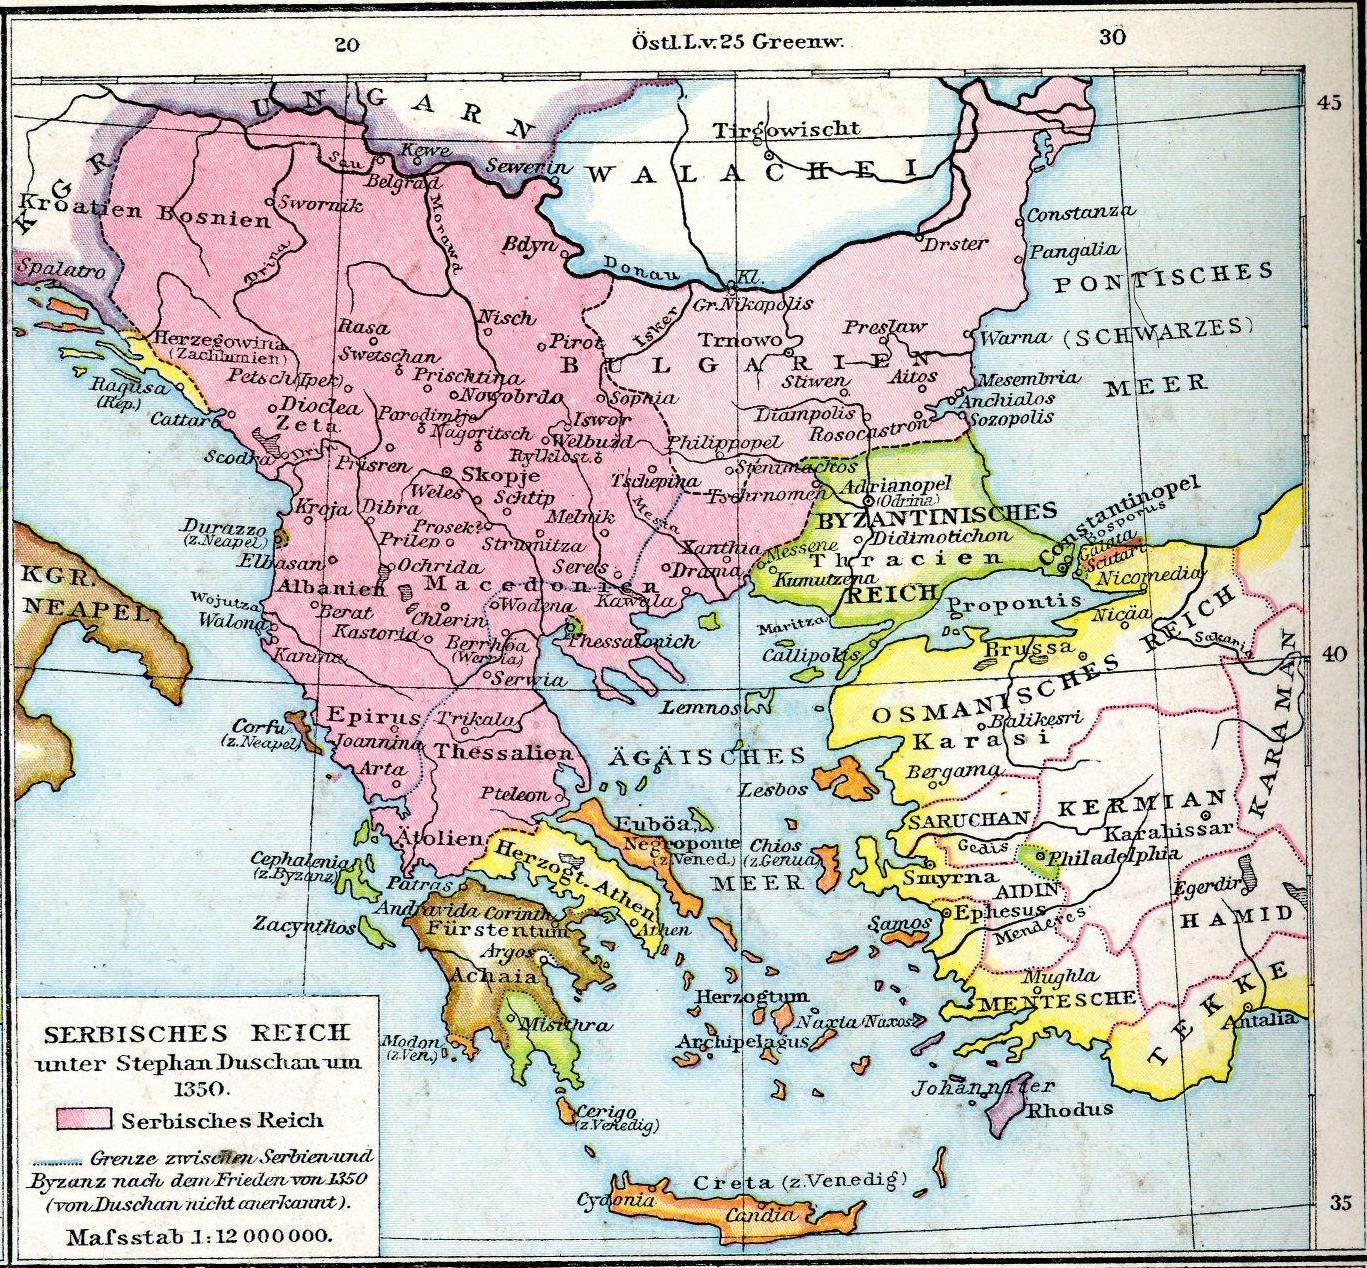 https://upload.wikimedia.org/wikipedia/commons/8/8f/Balkans_in_1350_according_to_Gustav_Droysen_from_19th_century.jpg